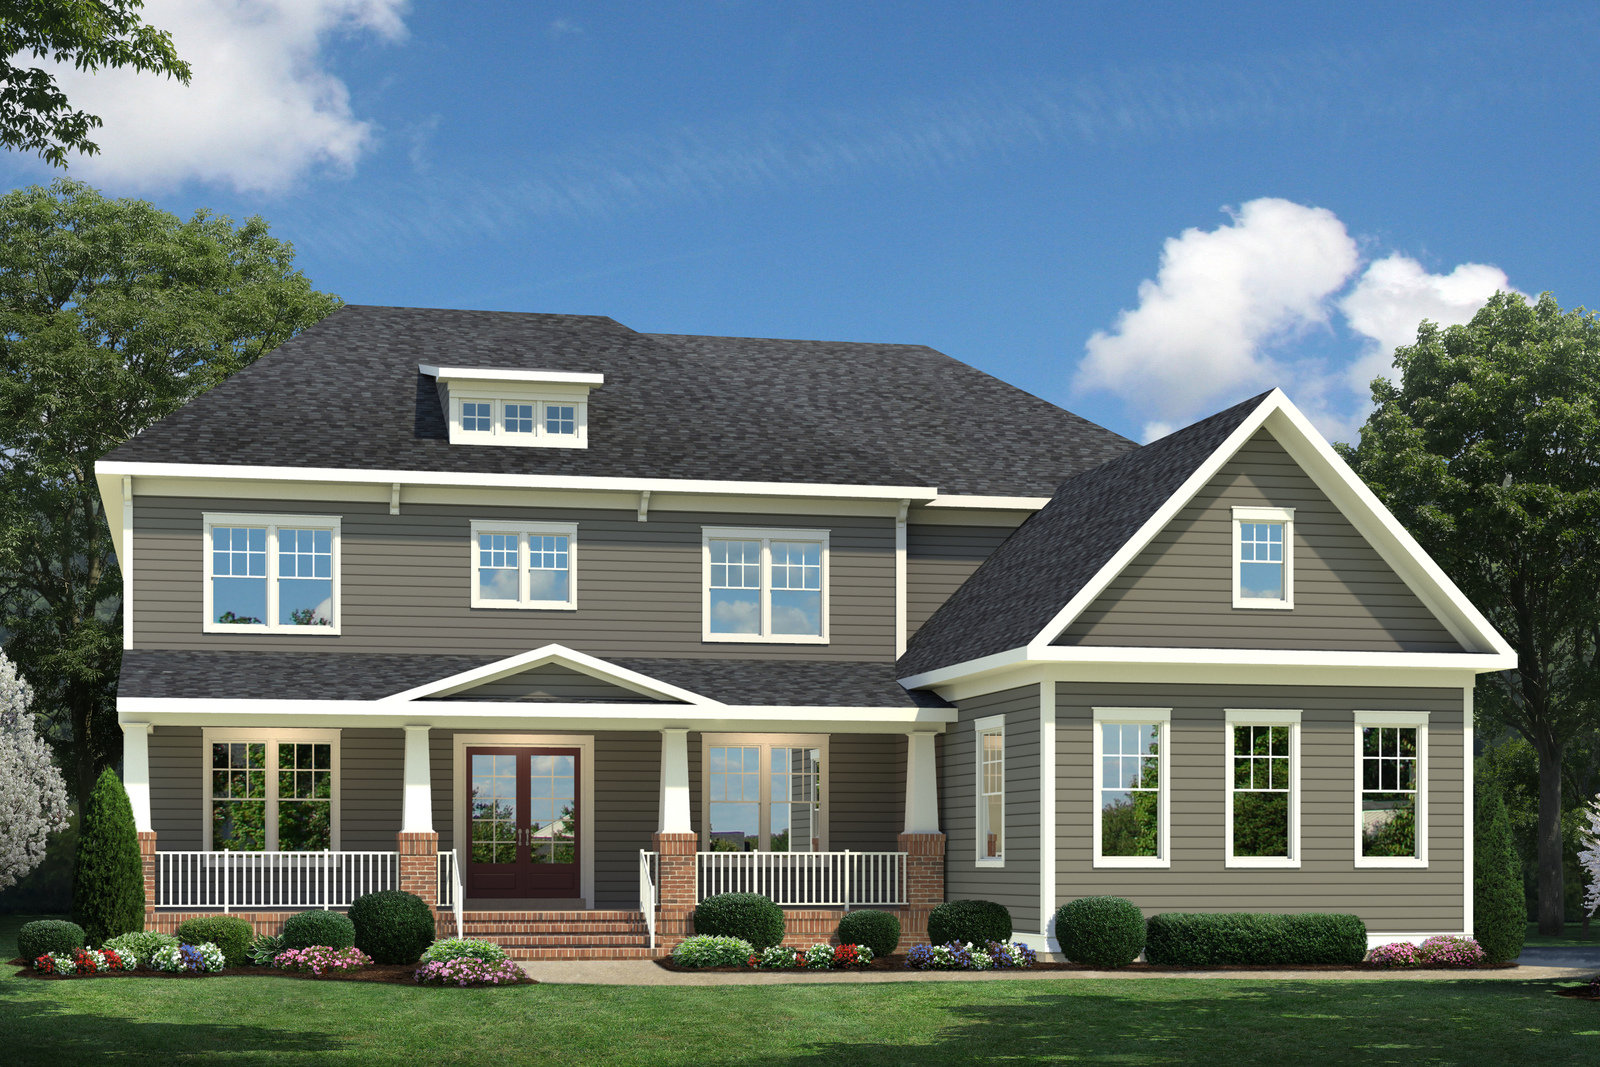 Elevation L is available with an estate-like front porch, hardi-panel siding and side-load garage.